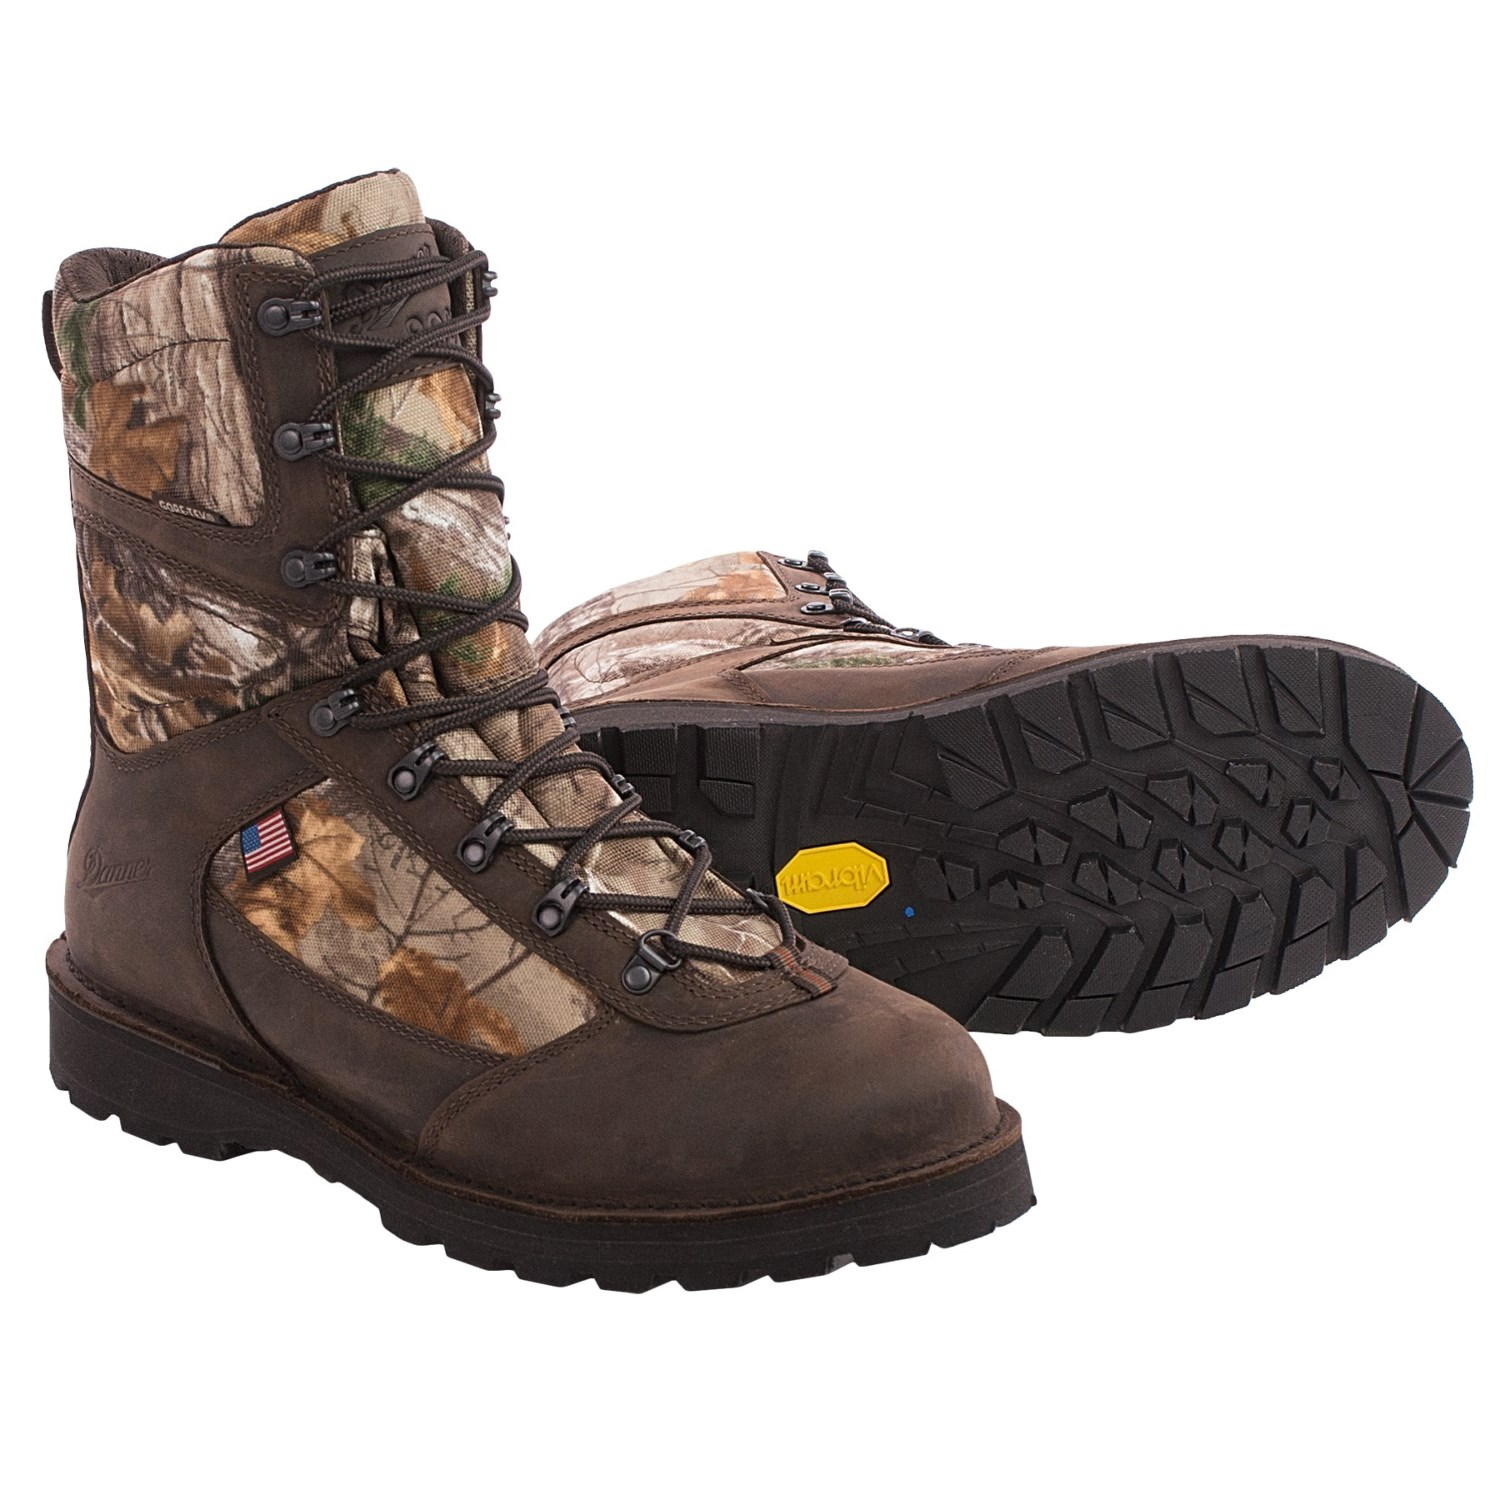 Danner East Ridge Gore Tex 174 Hunting Boots For Men 104pj